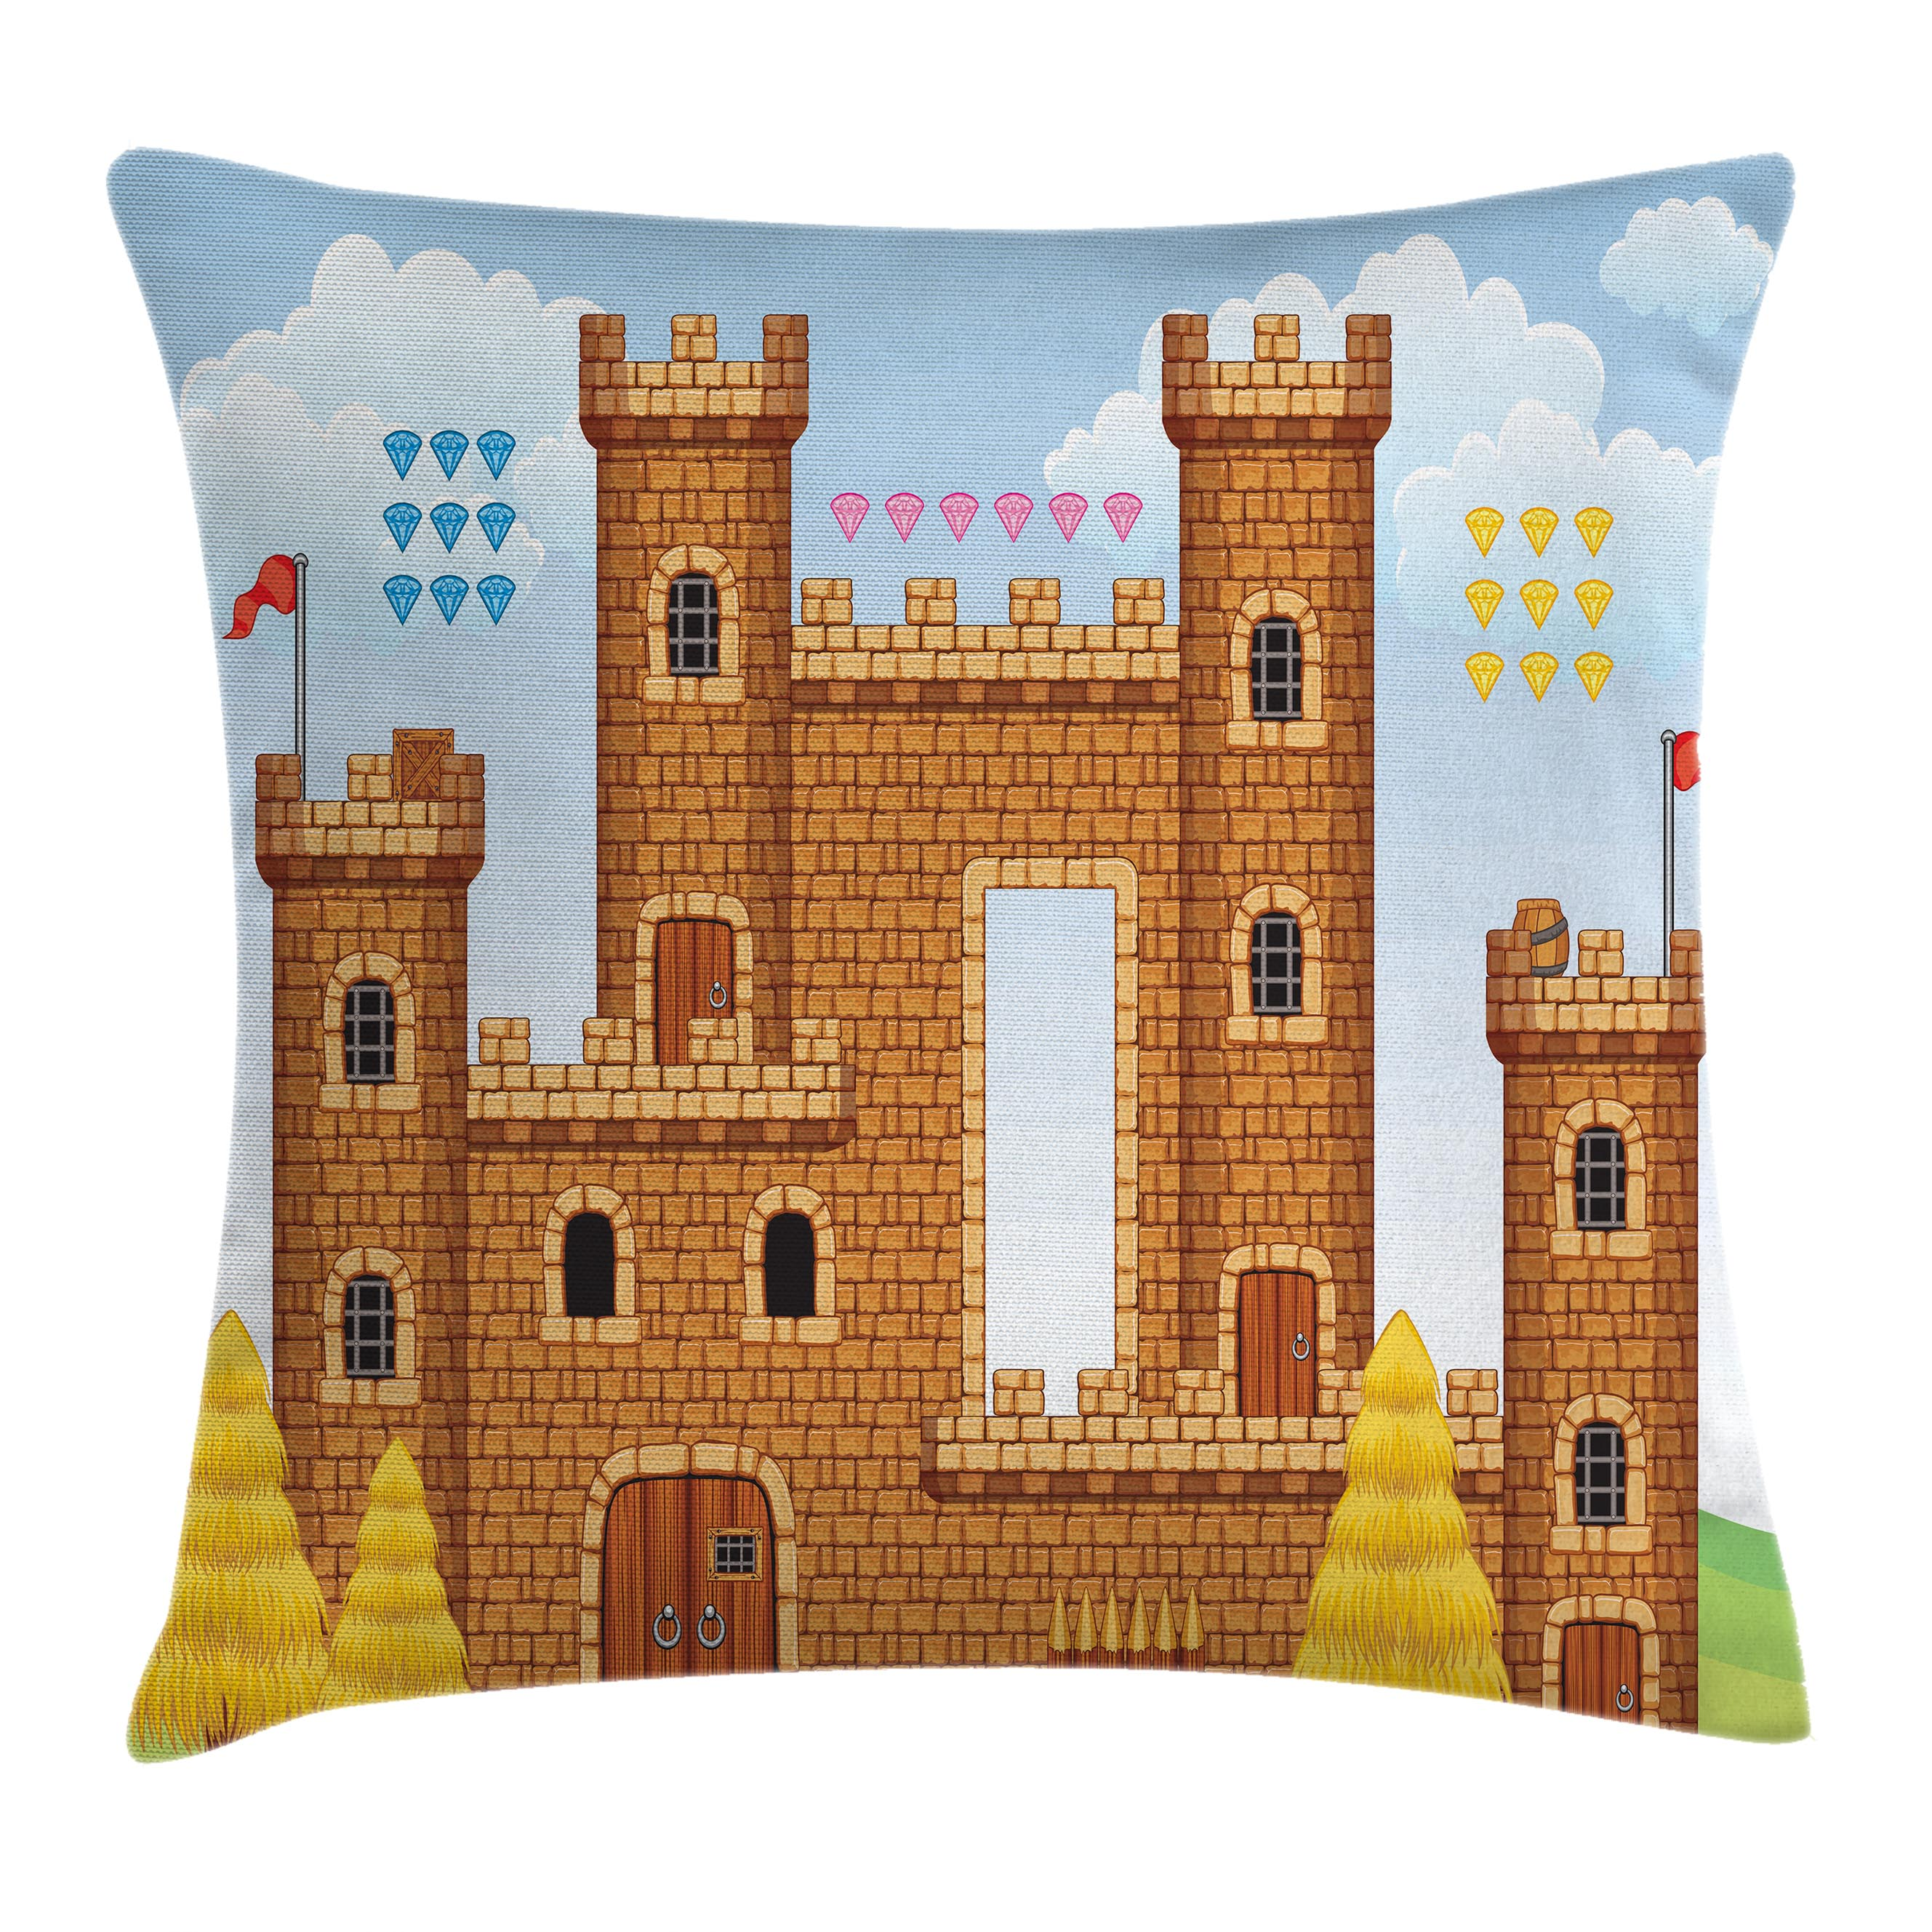 Children Throw Pillow Cushion Cover, Video Game Background with Castle Leisure Hobby Activity Kids Youth Design, Decorative Square Accent Pillow Case, 16 X 16 Inches, Light Caramel Blue, by Ambesonne